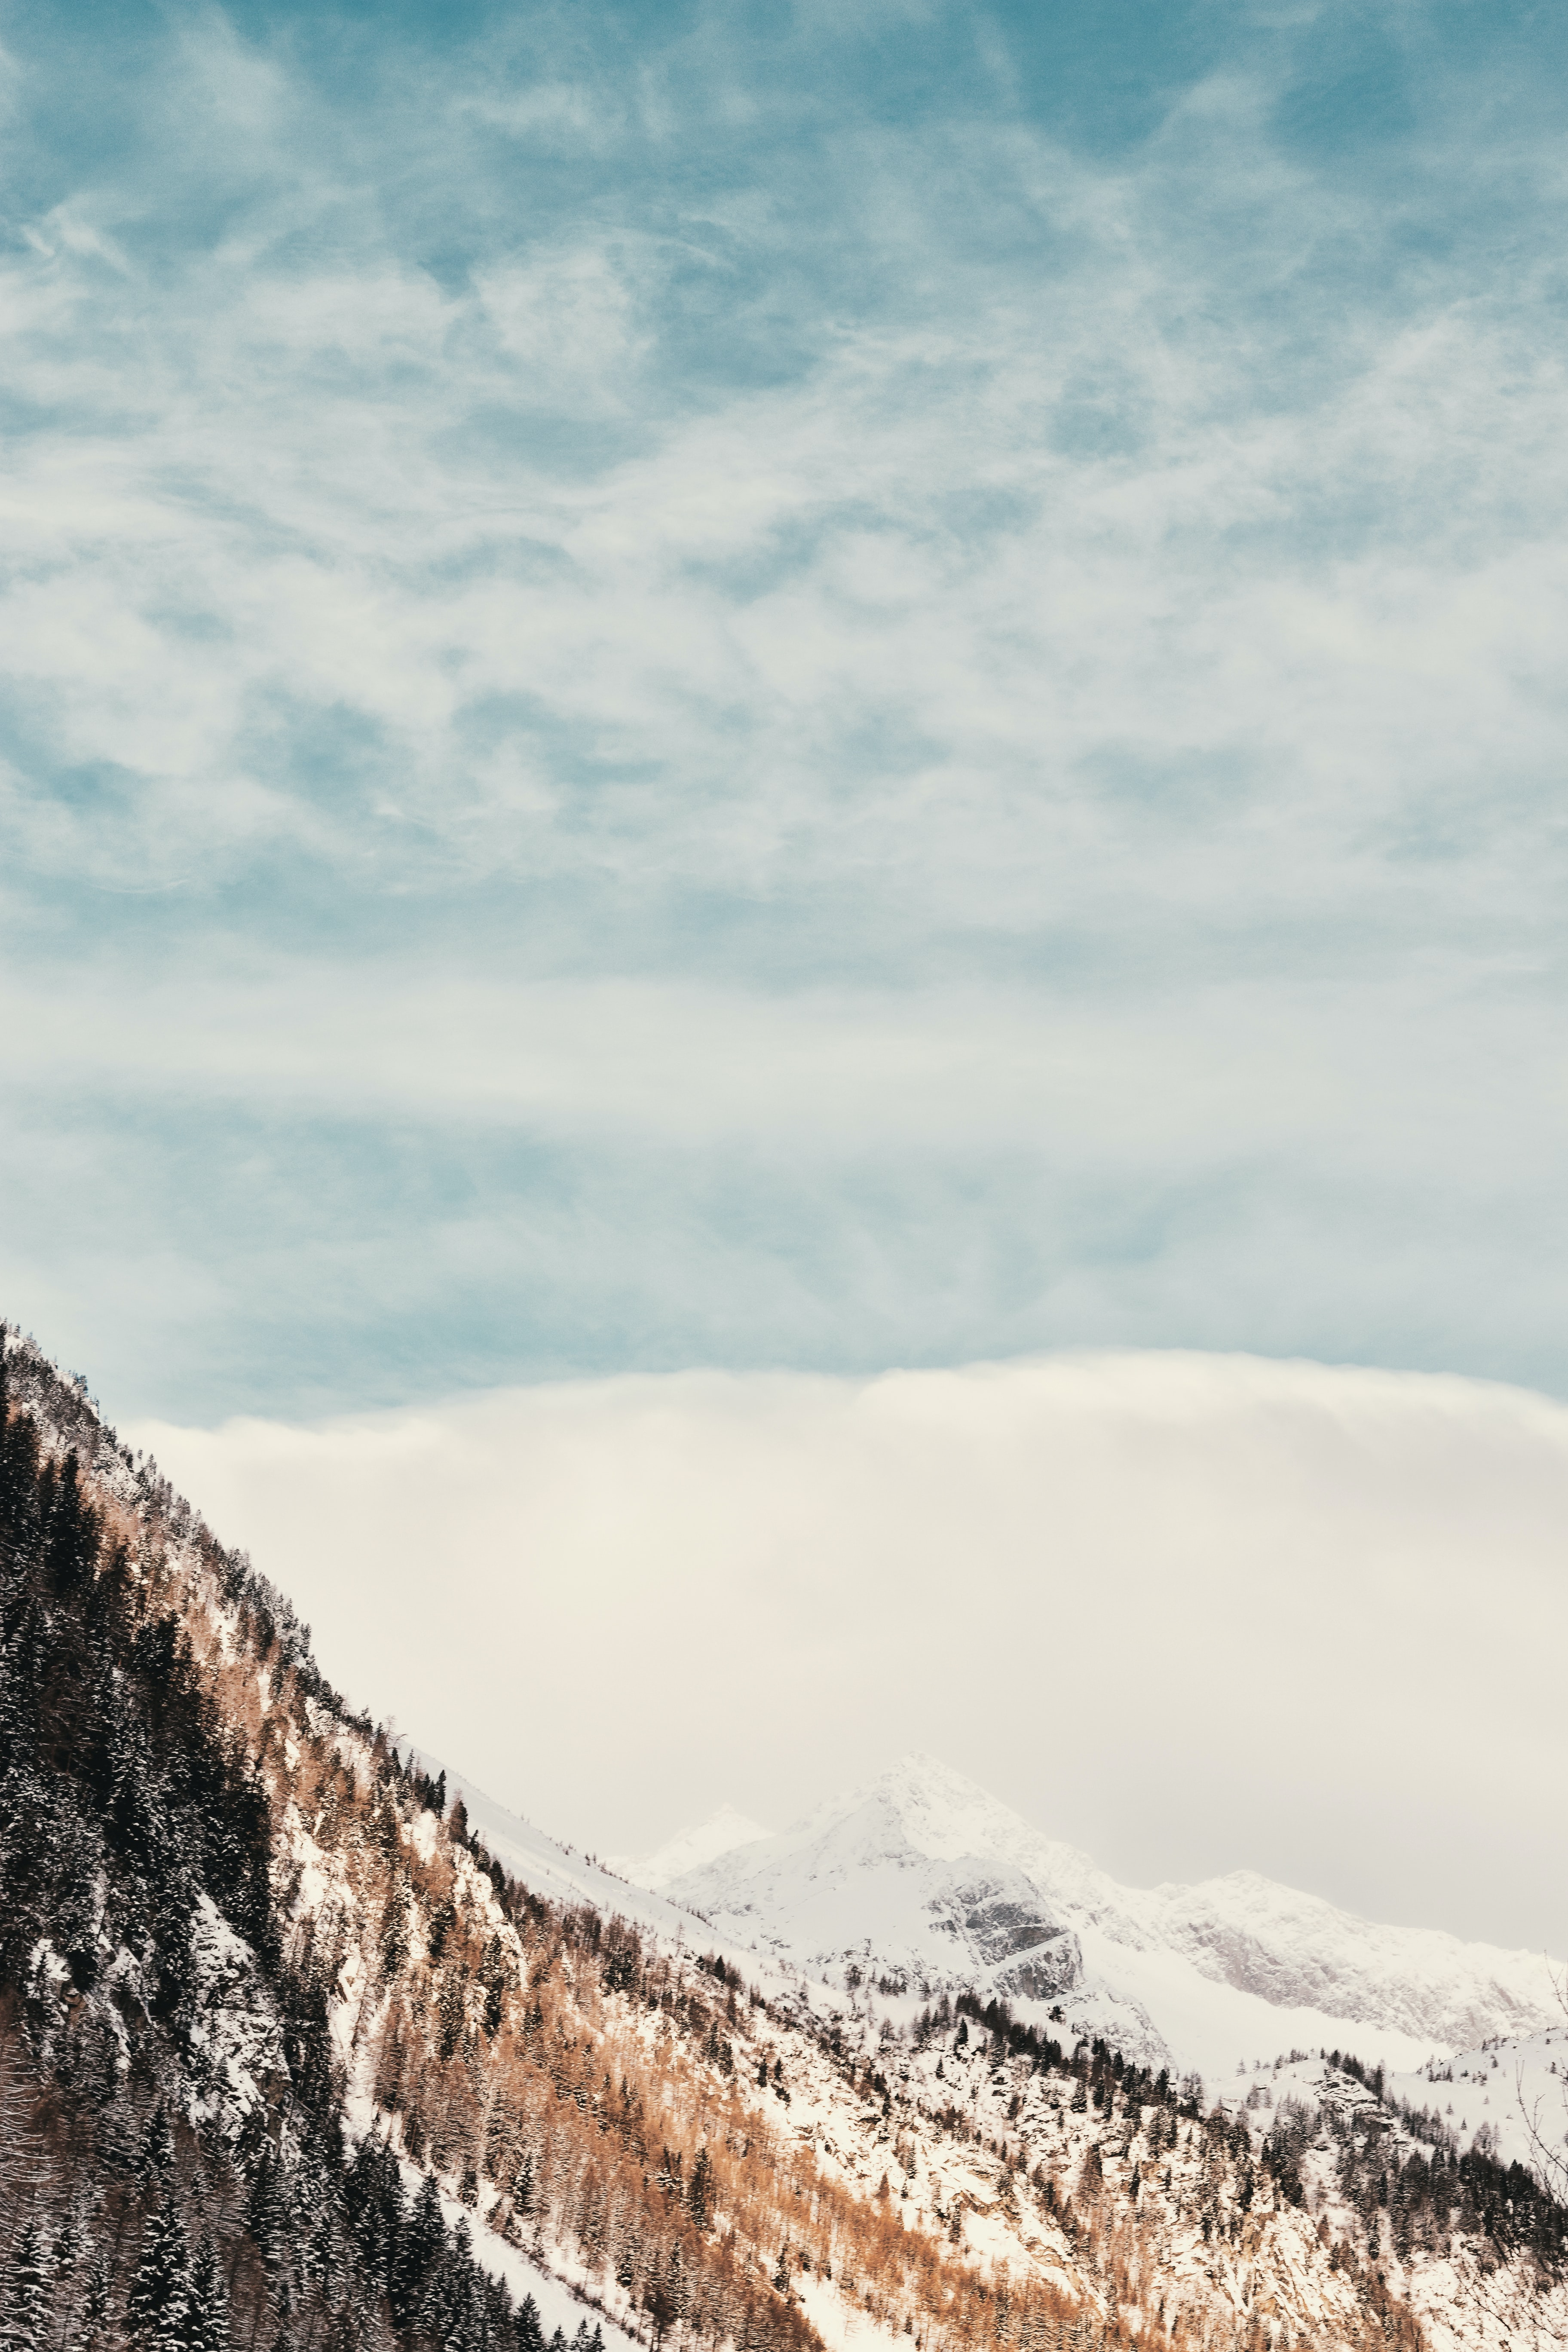 snowy mountain under cloudy sky